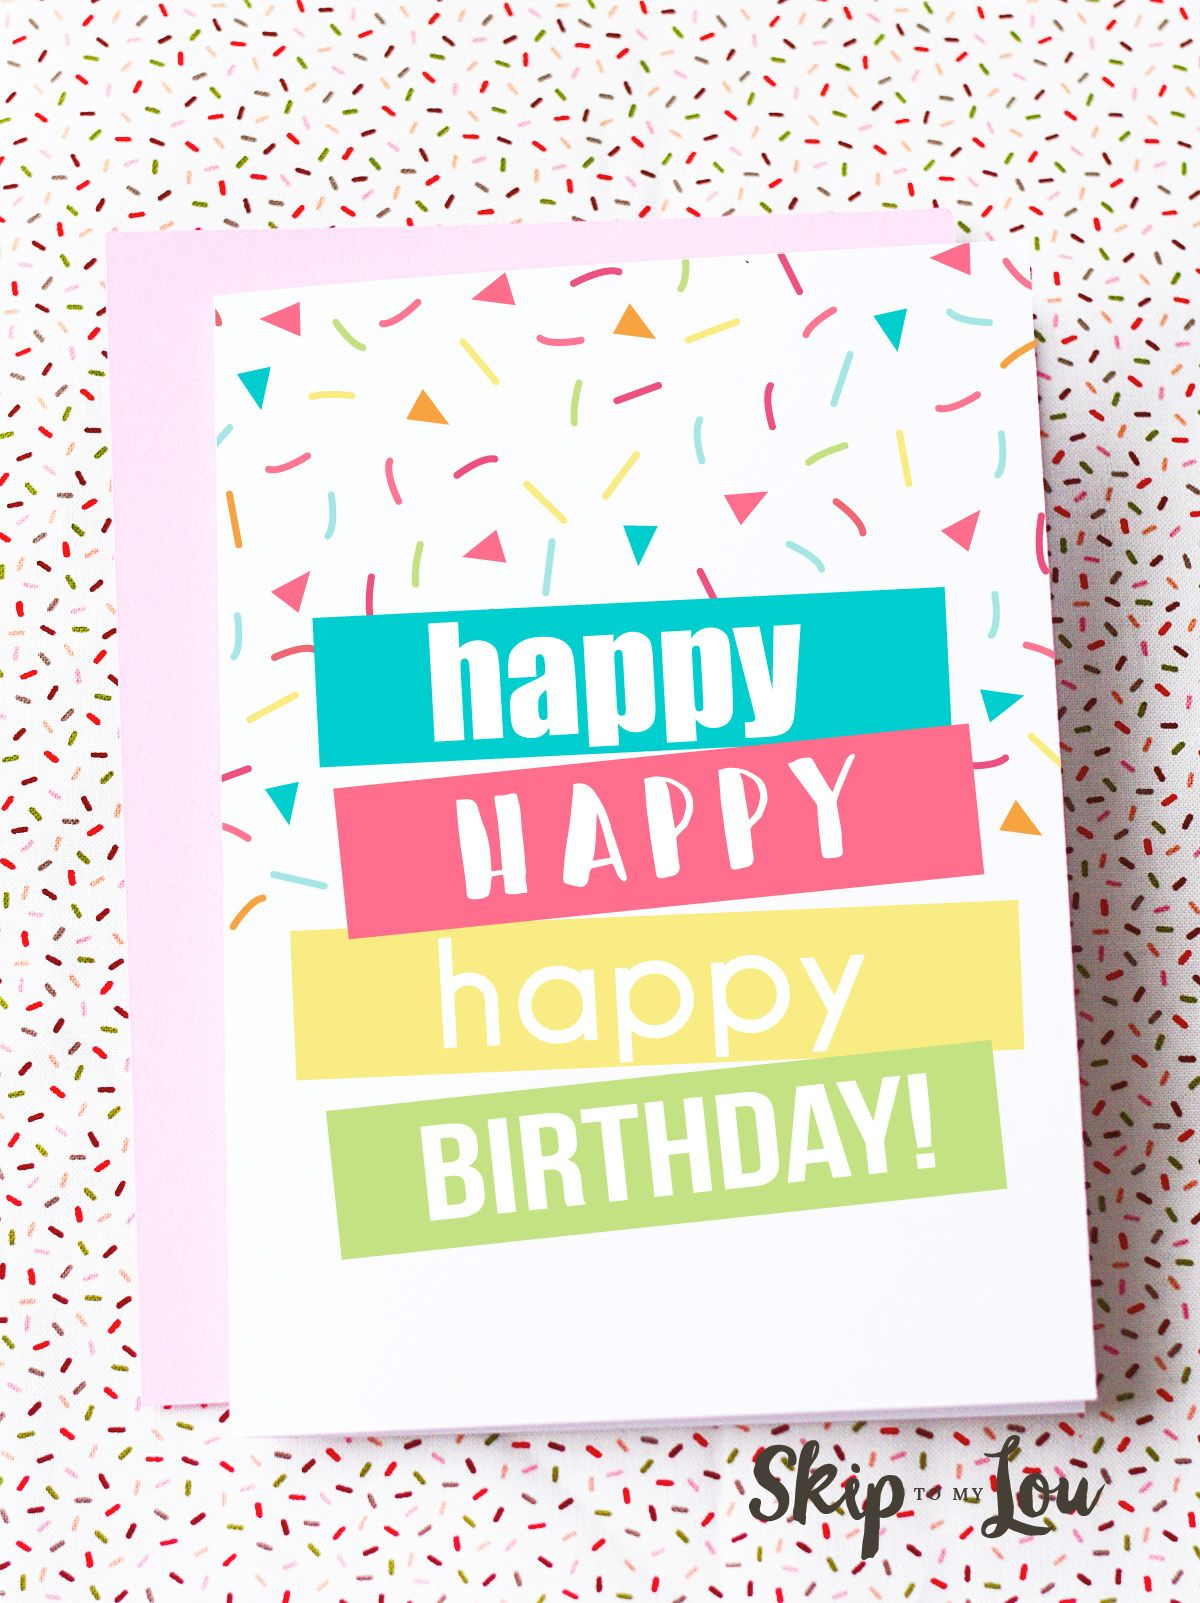 Printable Birthday Cards | Getting Crafty & Diy | Cards, Birthday - Free Printable Birthday Cards For Wife